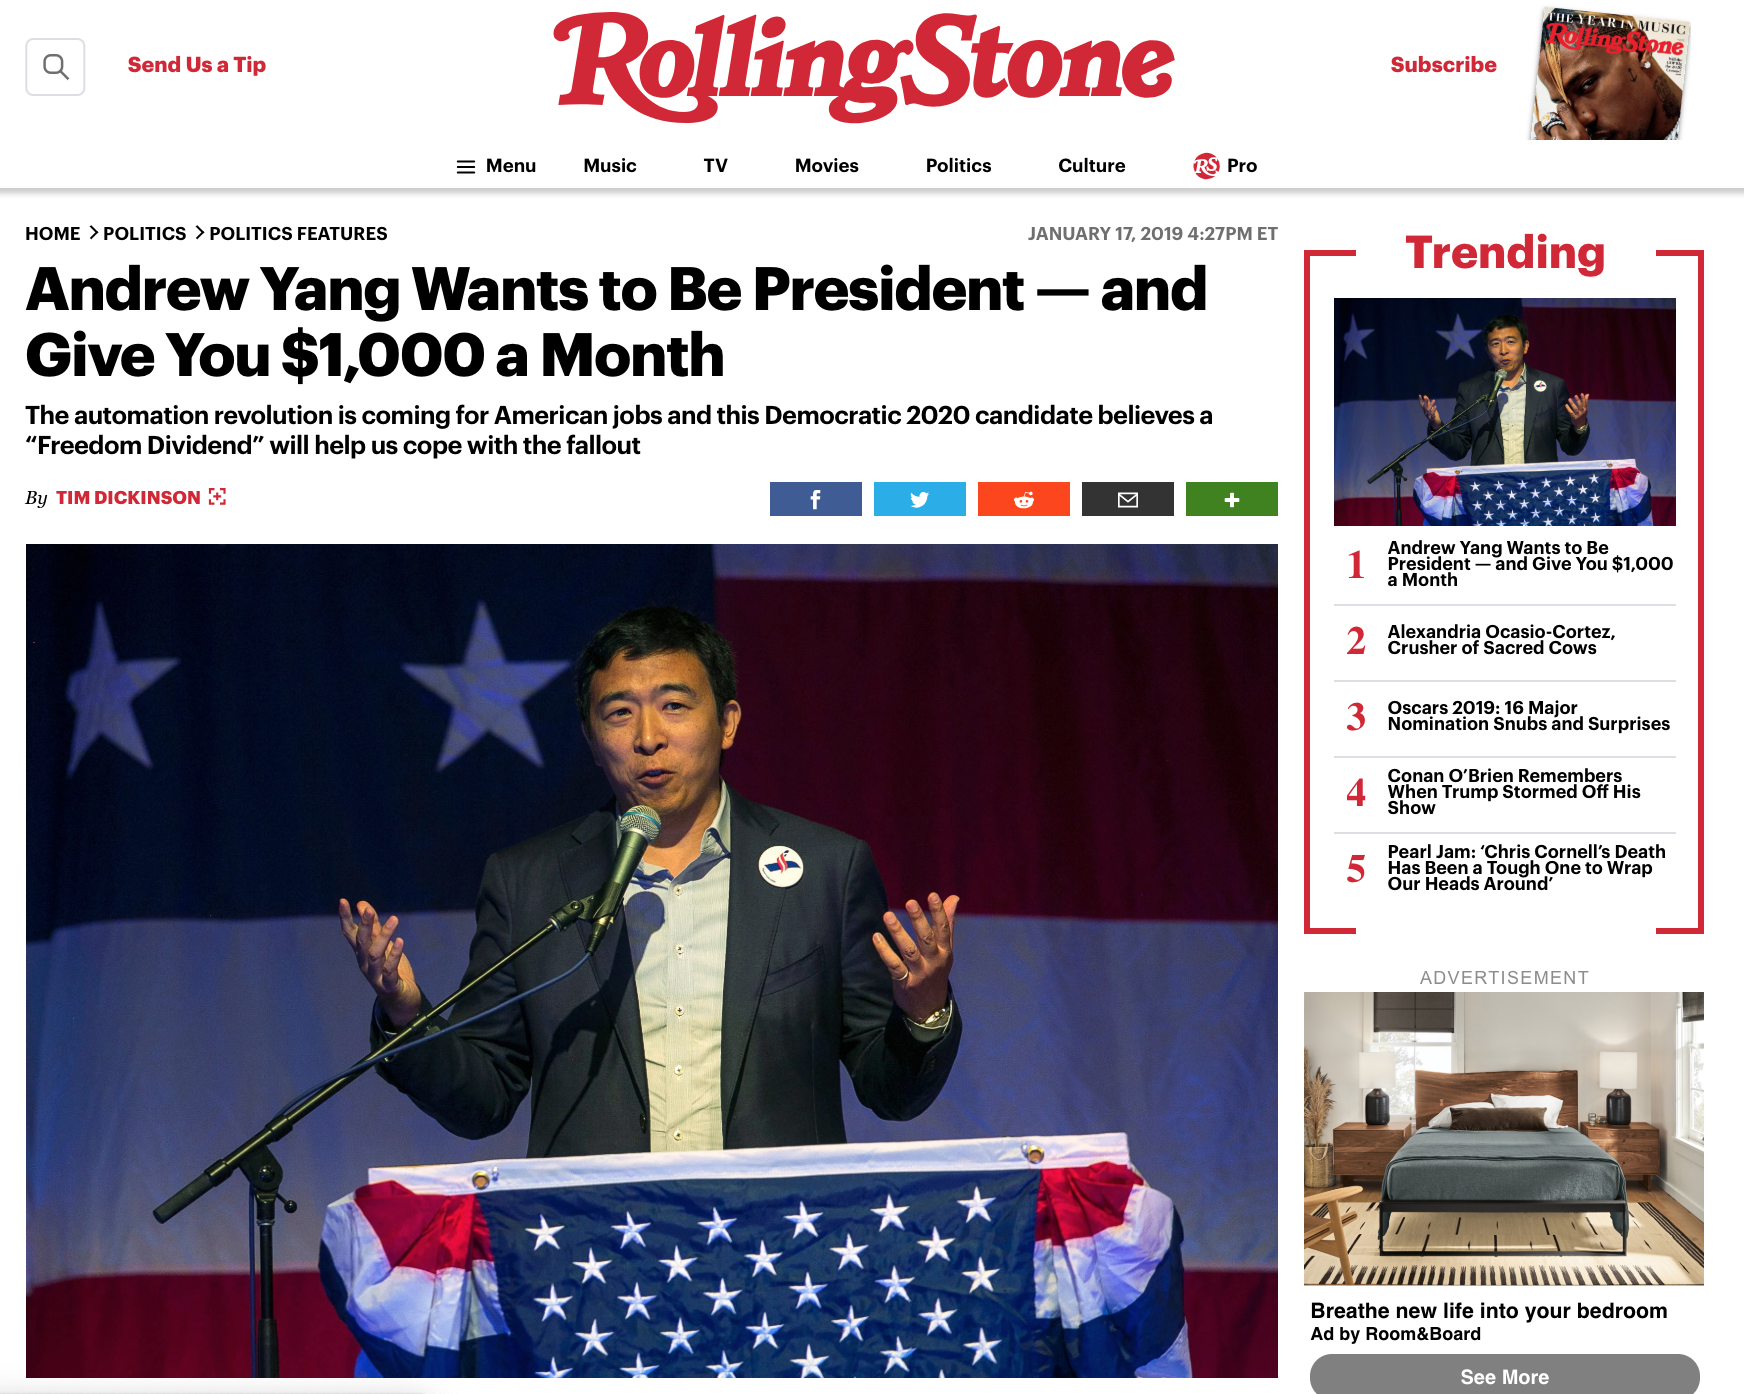 Rolling Stone magazine publishes an interview with Andrew Yang